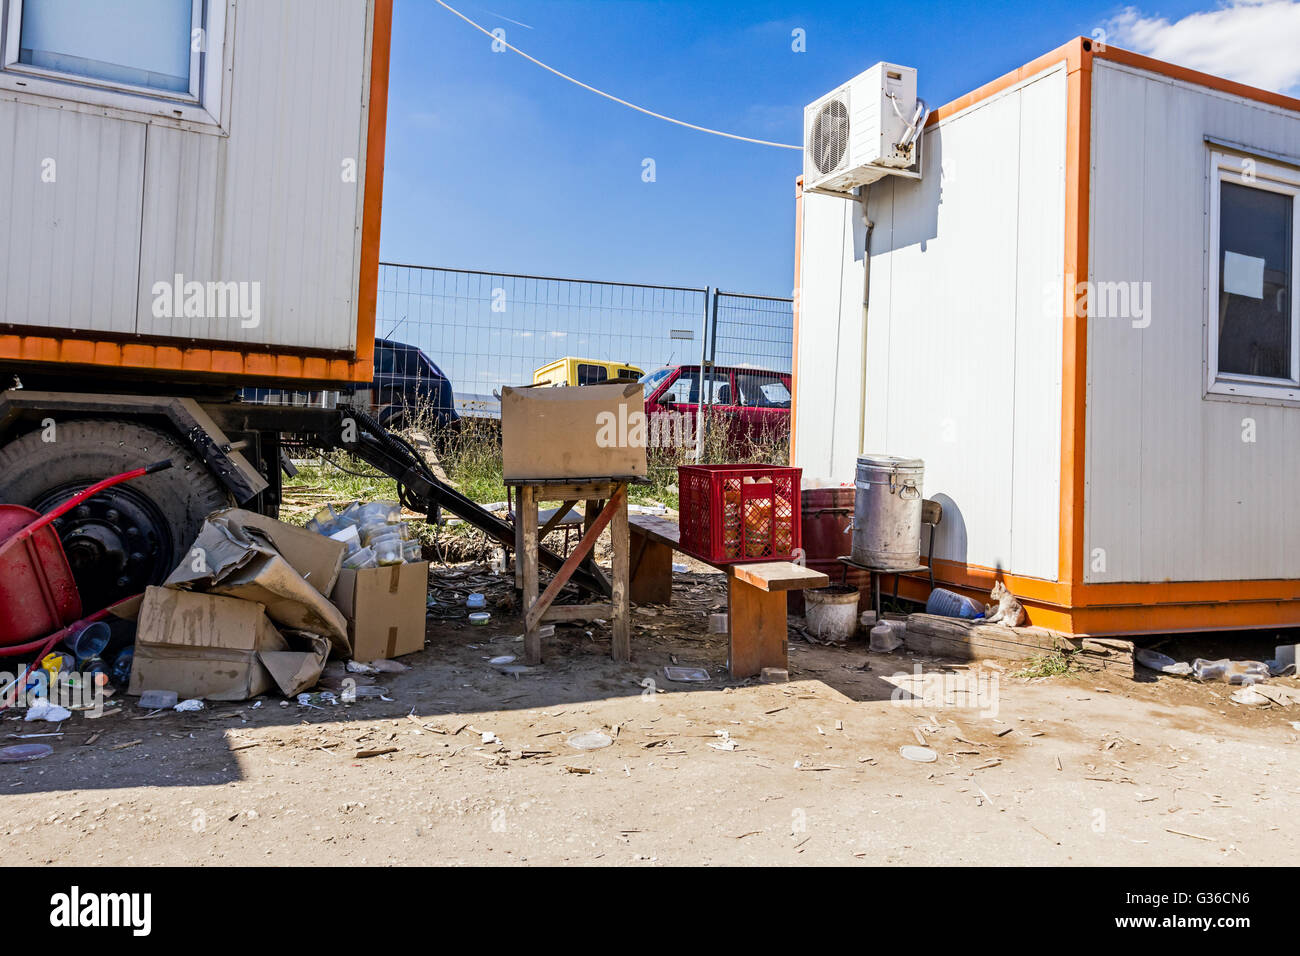 Workers place for eating among office containers near building site. - Stock Image